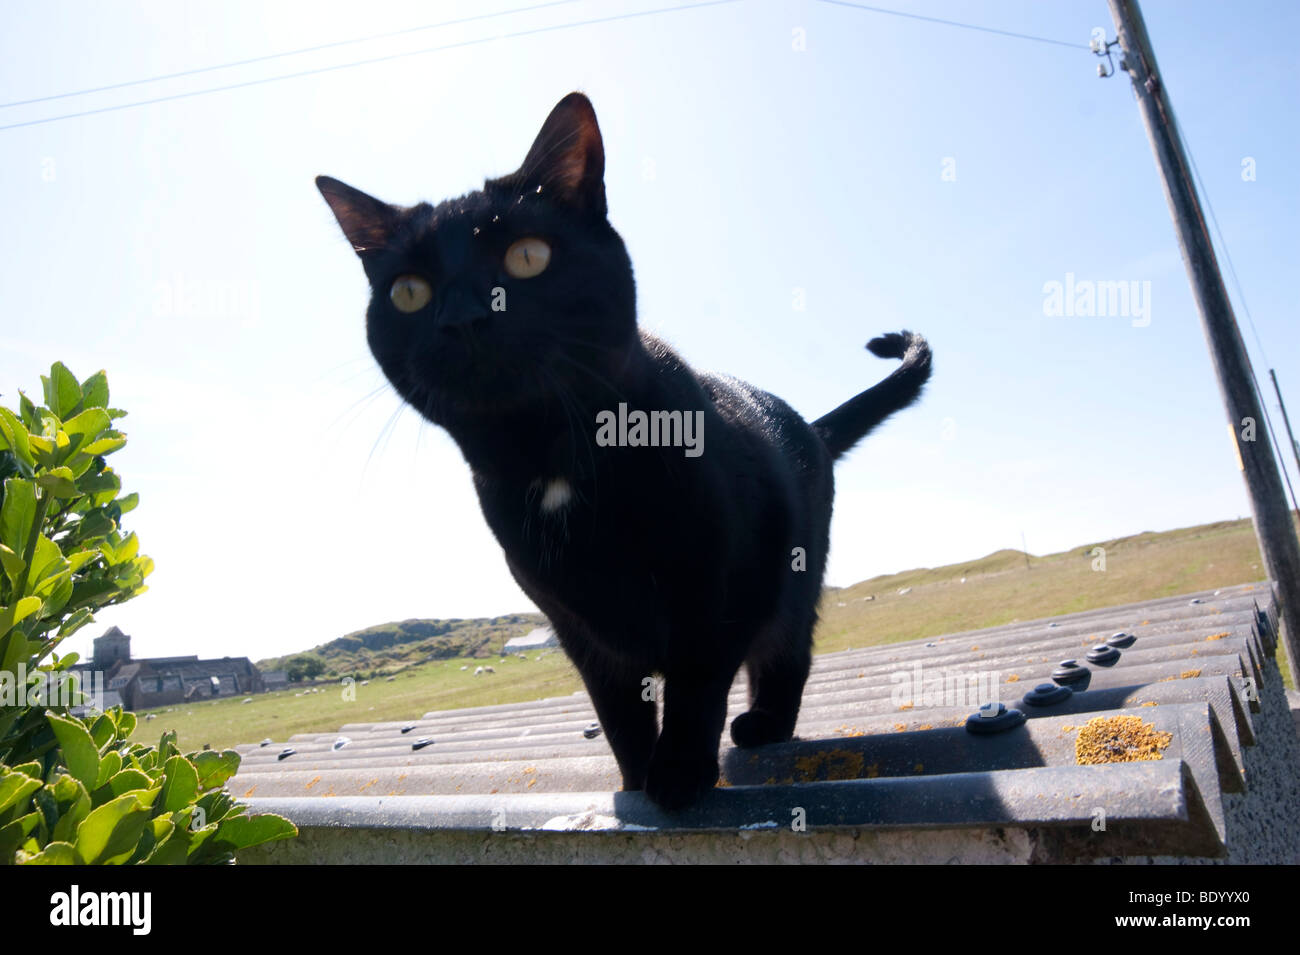 Isle of Iona Scotland - summer cat on a hot tin roof - Stock Image